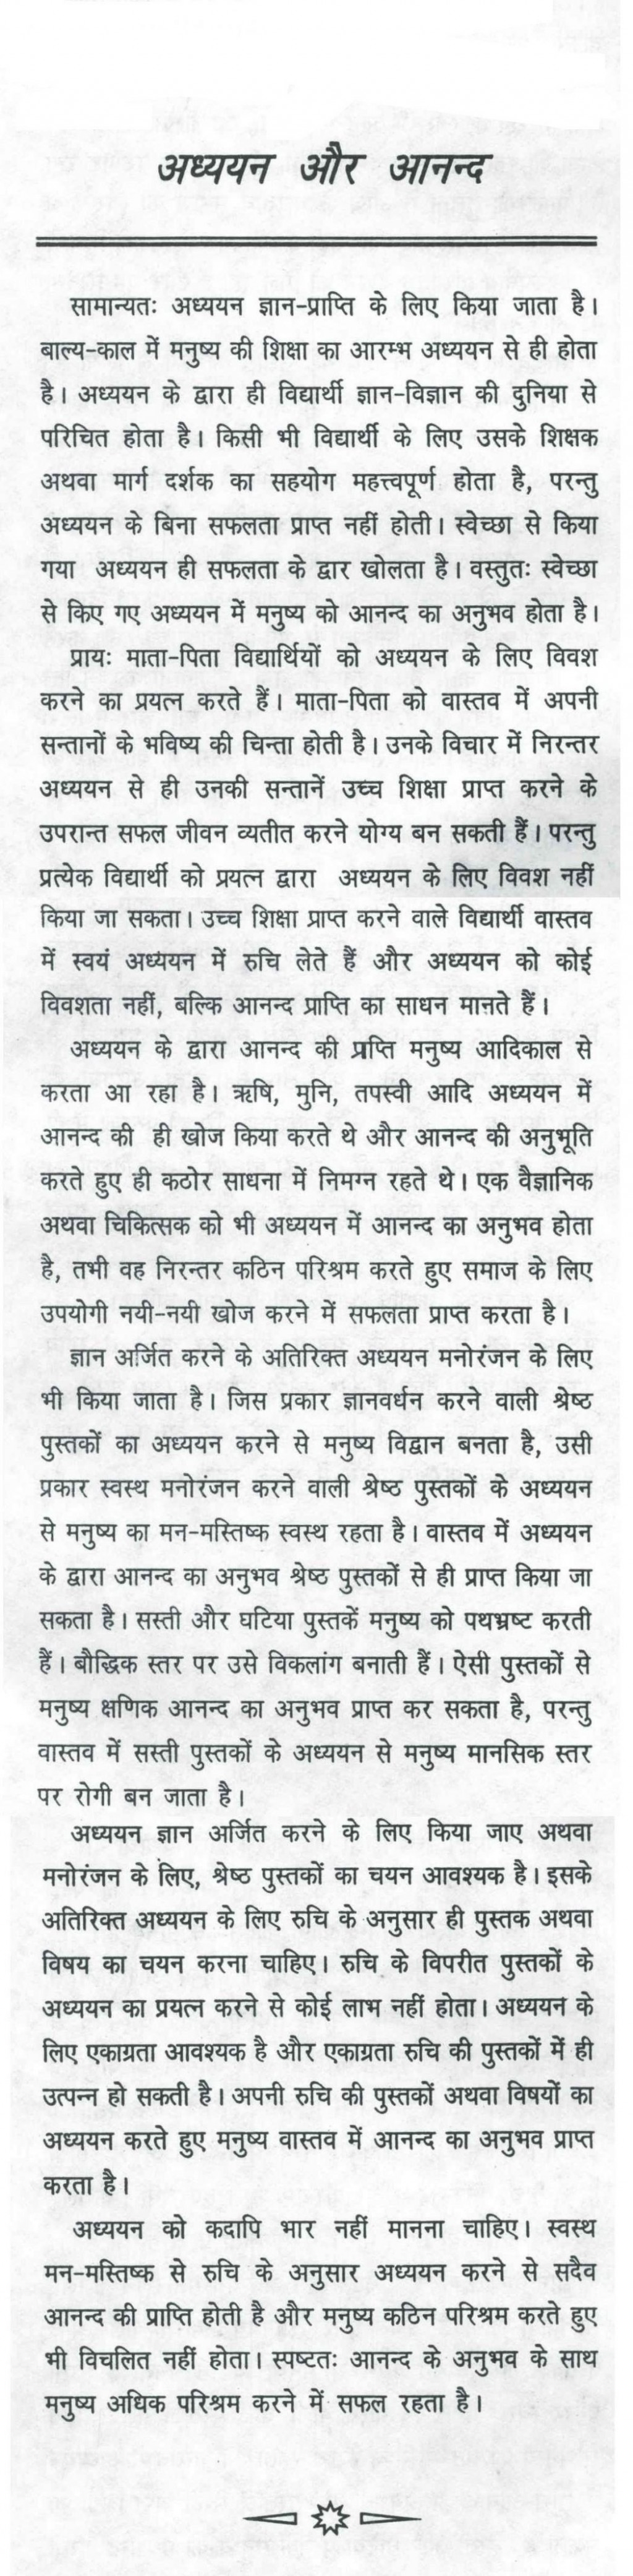 024 Books And Reading Essay Example On Pleasure Of In Hindi Close 10019 Poetry Outstanding Benefits Book English For Class 6 My Hobby Large